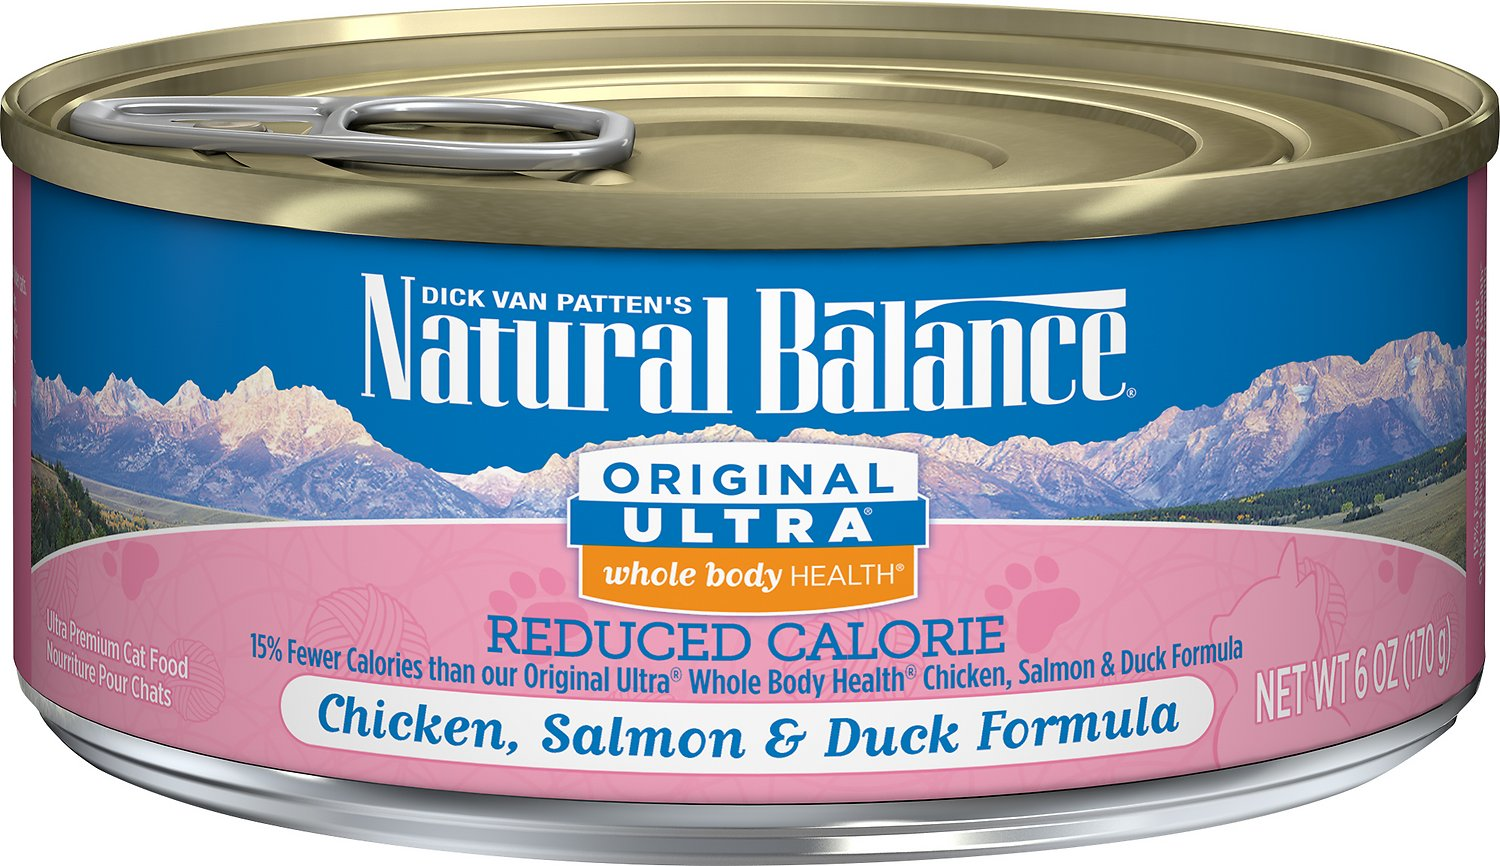 Natural Balance Original Ultra Whole Body Health Reduced Calorie Chicken, Salmon & Duck Formula Canned Cat Food, 6-oz